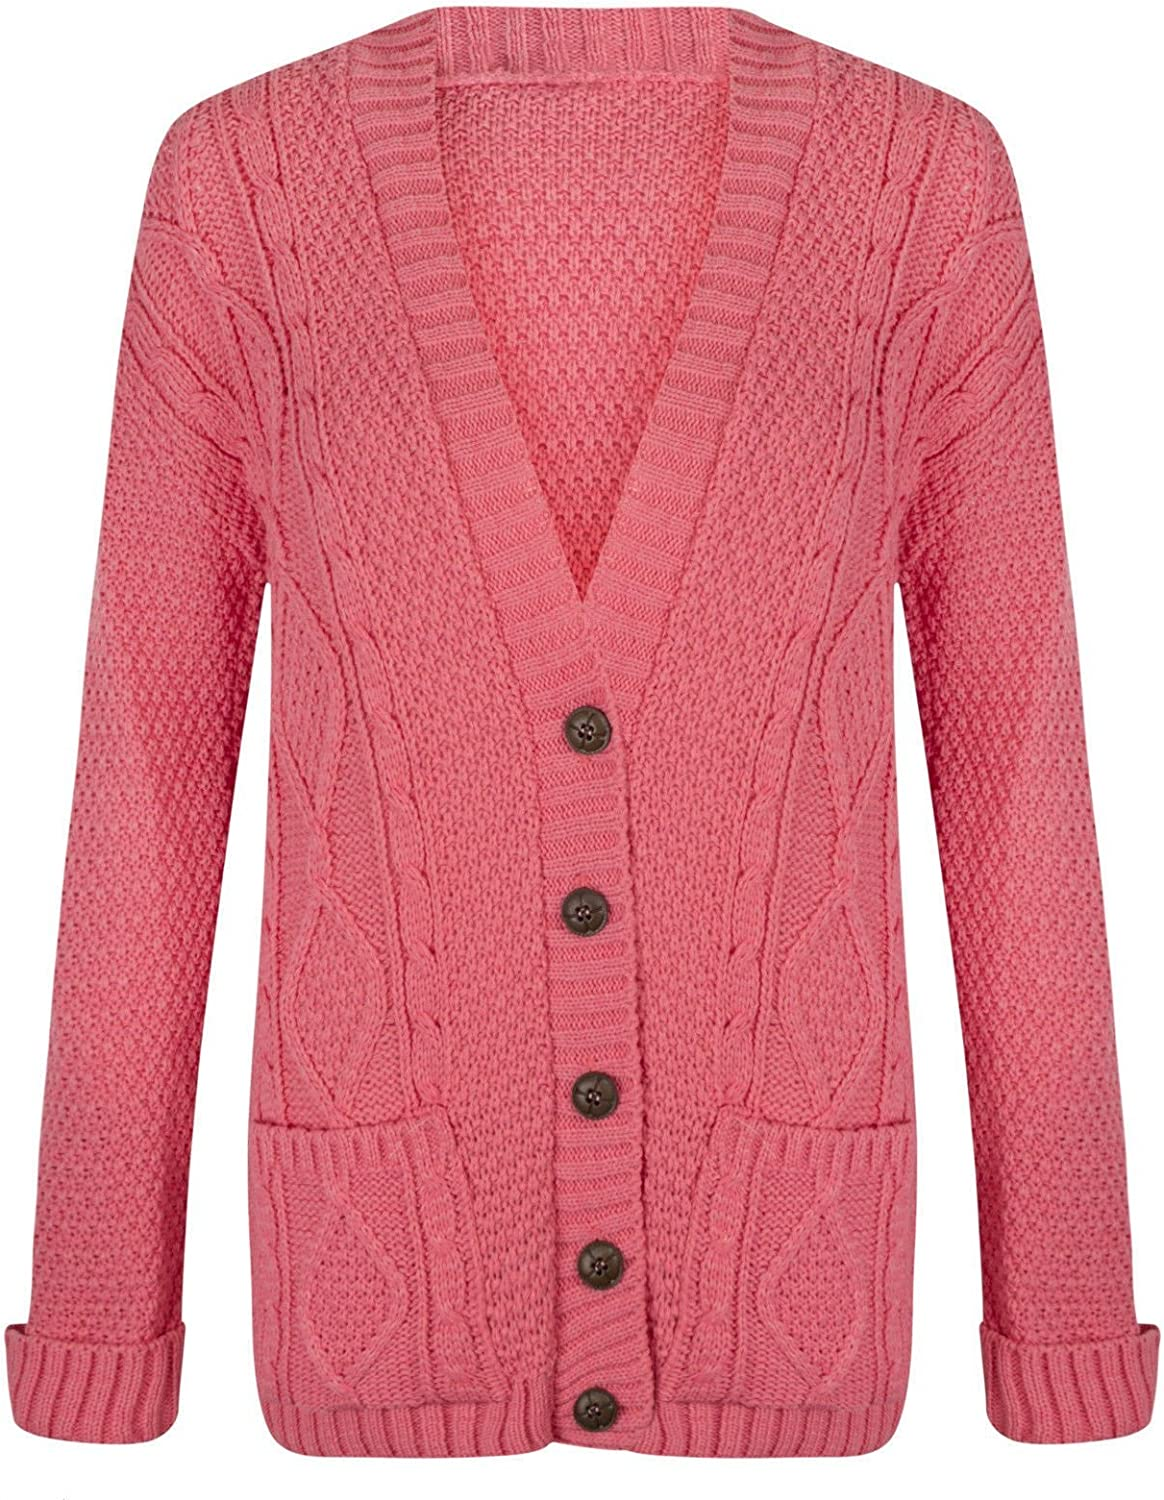 Momo/&Ayat Fashions Ladies Long Chunky Cable Knitted Button Cardigan UK Size 8-26